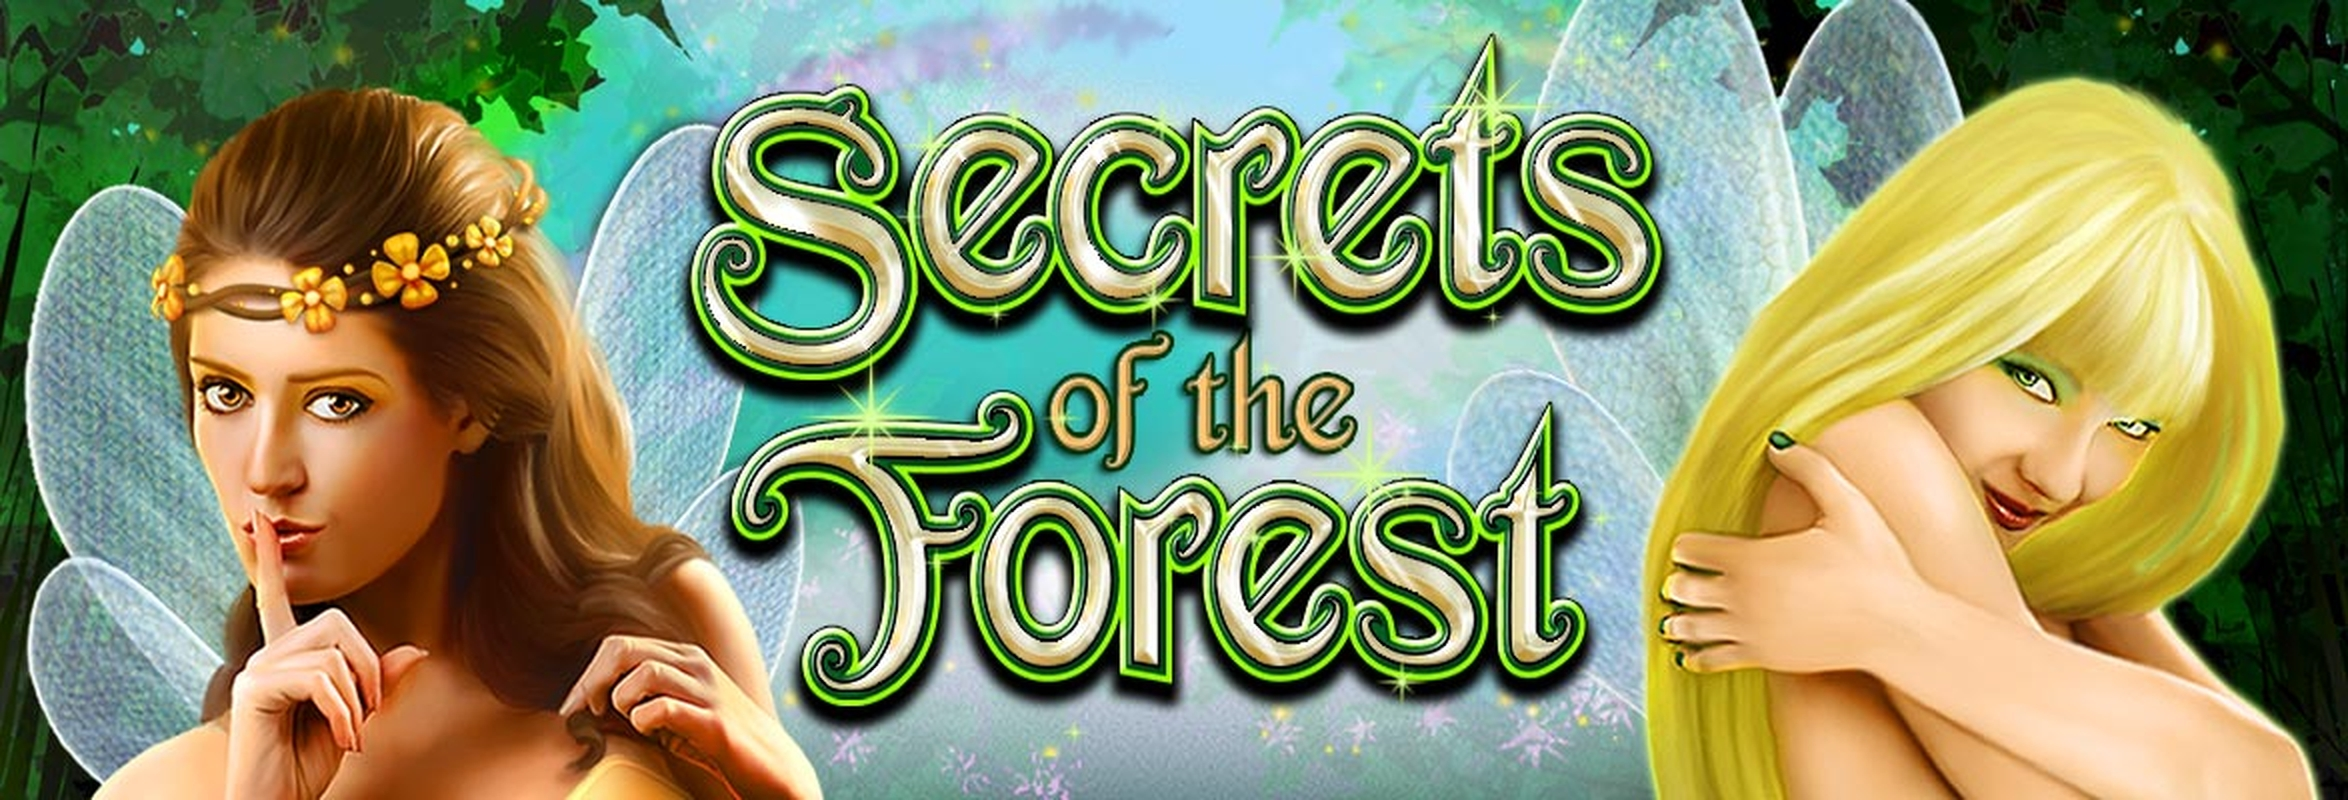 Play Secrets Of The Tomb Slot Machine Free With No Download